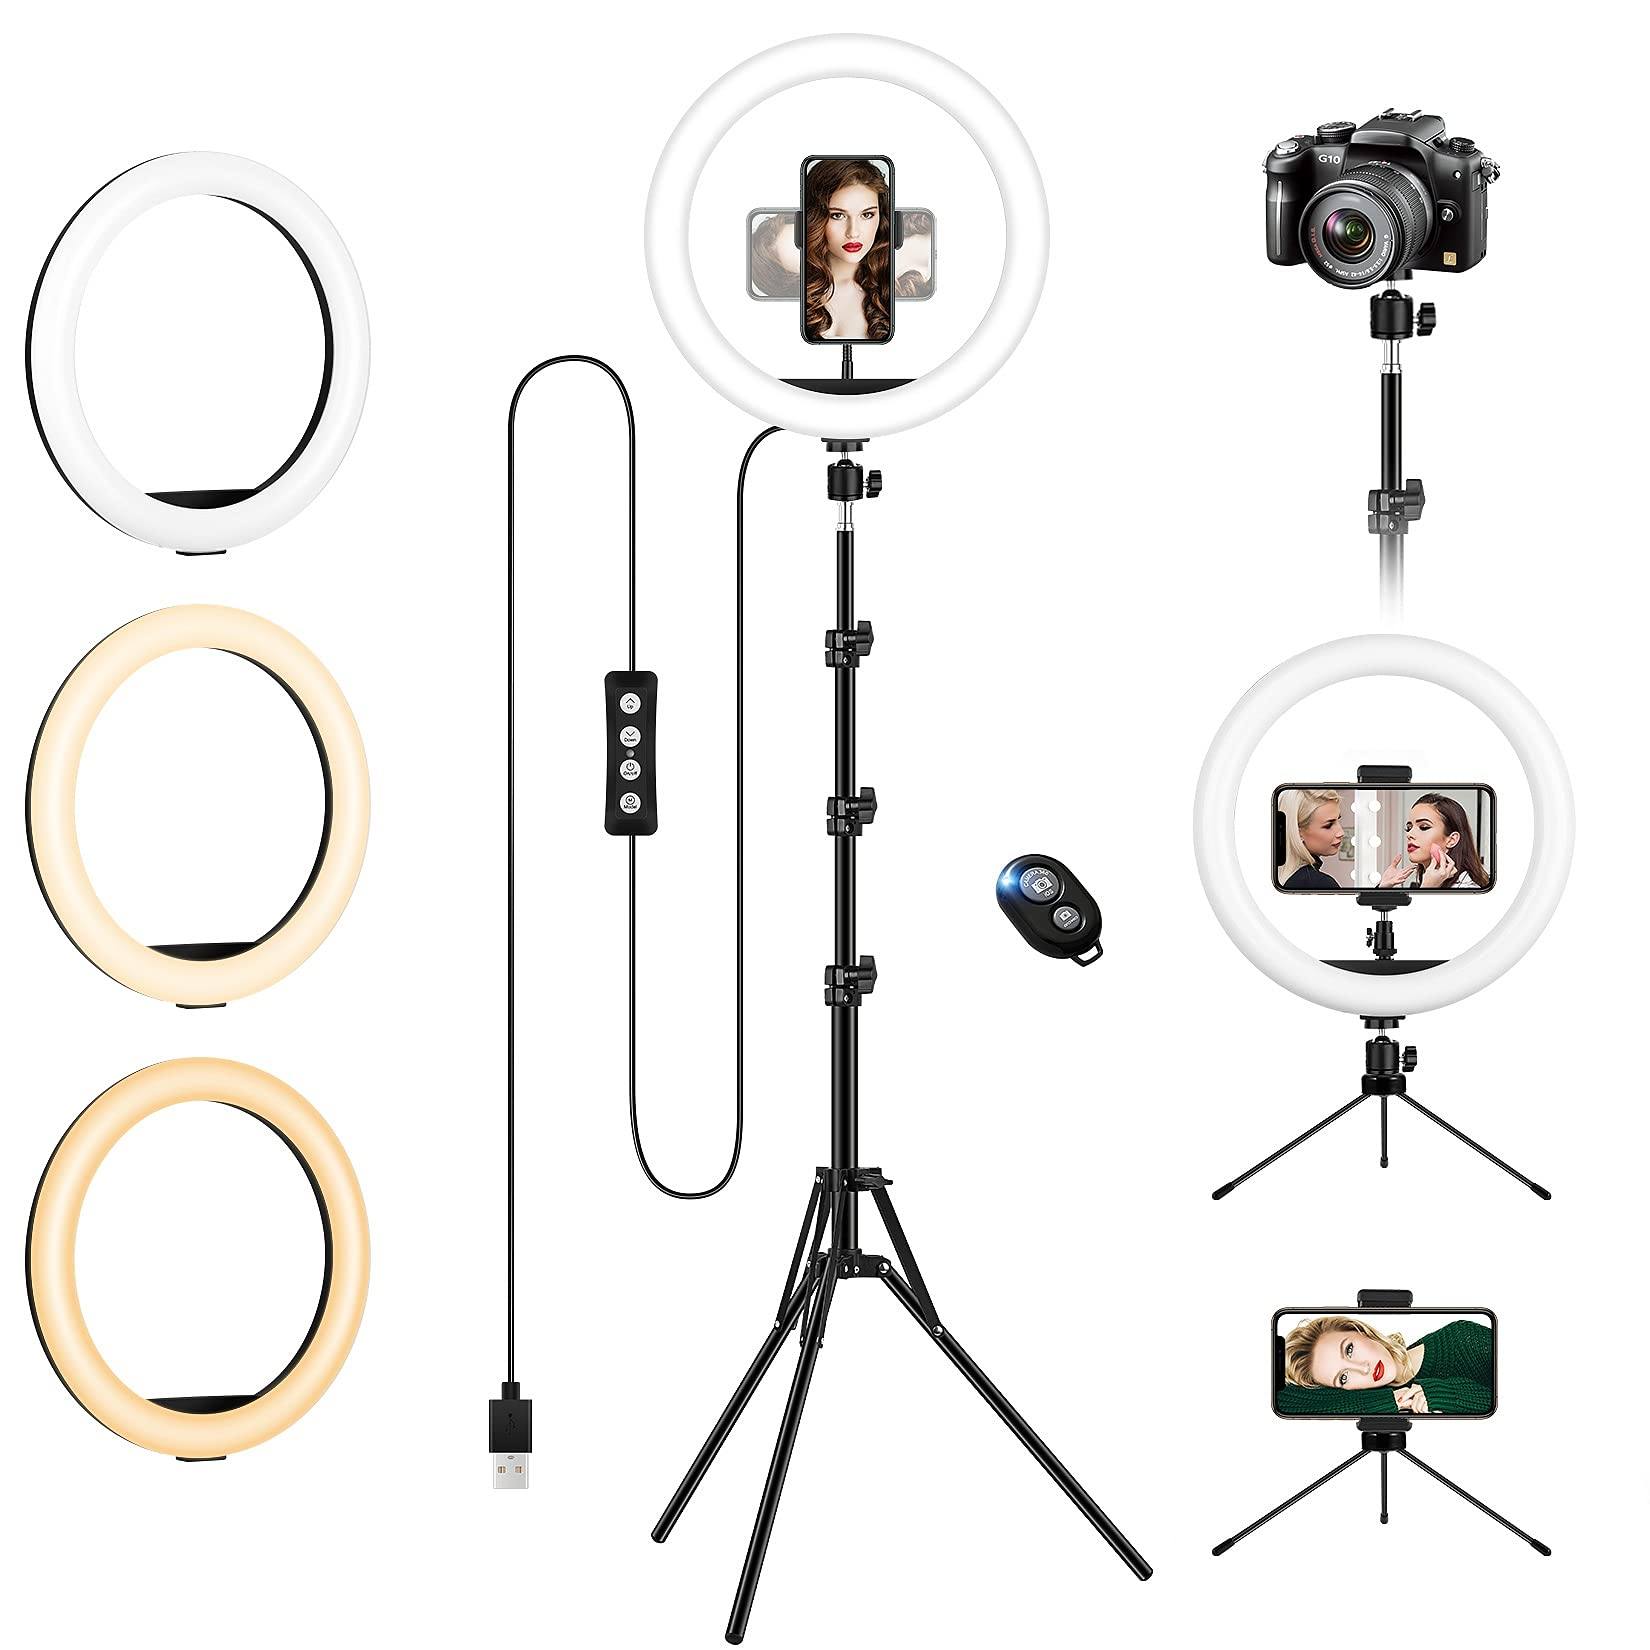 "Ring Light with Tripod Stand & Phone Holder Tall, 12.6 inch Selfie Ring Lights for Makeup, Live Streaming, Tiktok, YouTube Video, Dimmable LED Circle Light with Remote (Total Height: 187 cm/73.6"")"